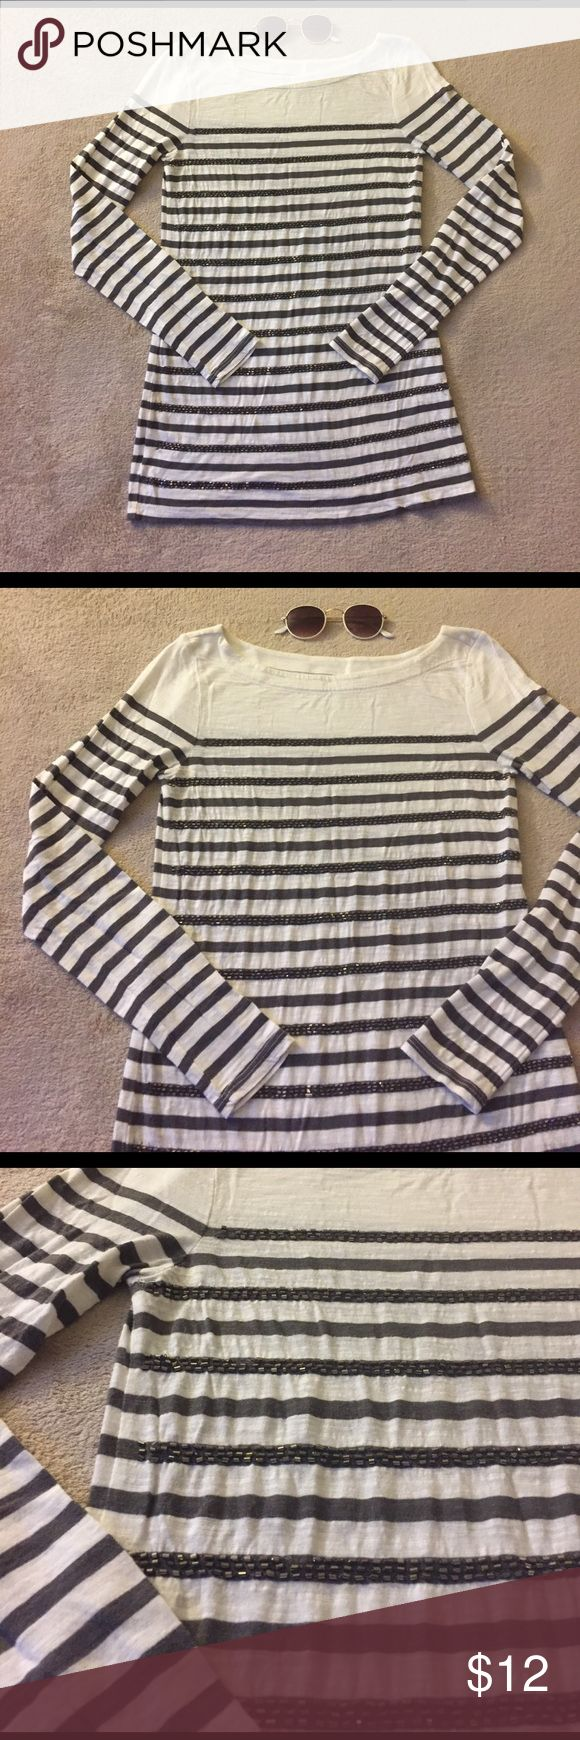 LOFT Sz XS Long Sleeve Beaded Stripe Tee Ann Taylor LOFT size XS long sleeve cream tee with gray stripes and beaded appliqués. Light weight material with heathered and/or burnout look/feel. 100% cotton. LOFT Tops Tees - Long Sleeve